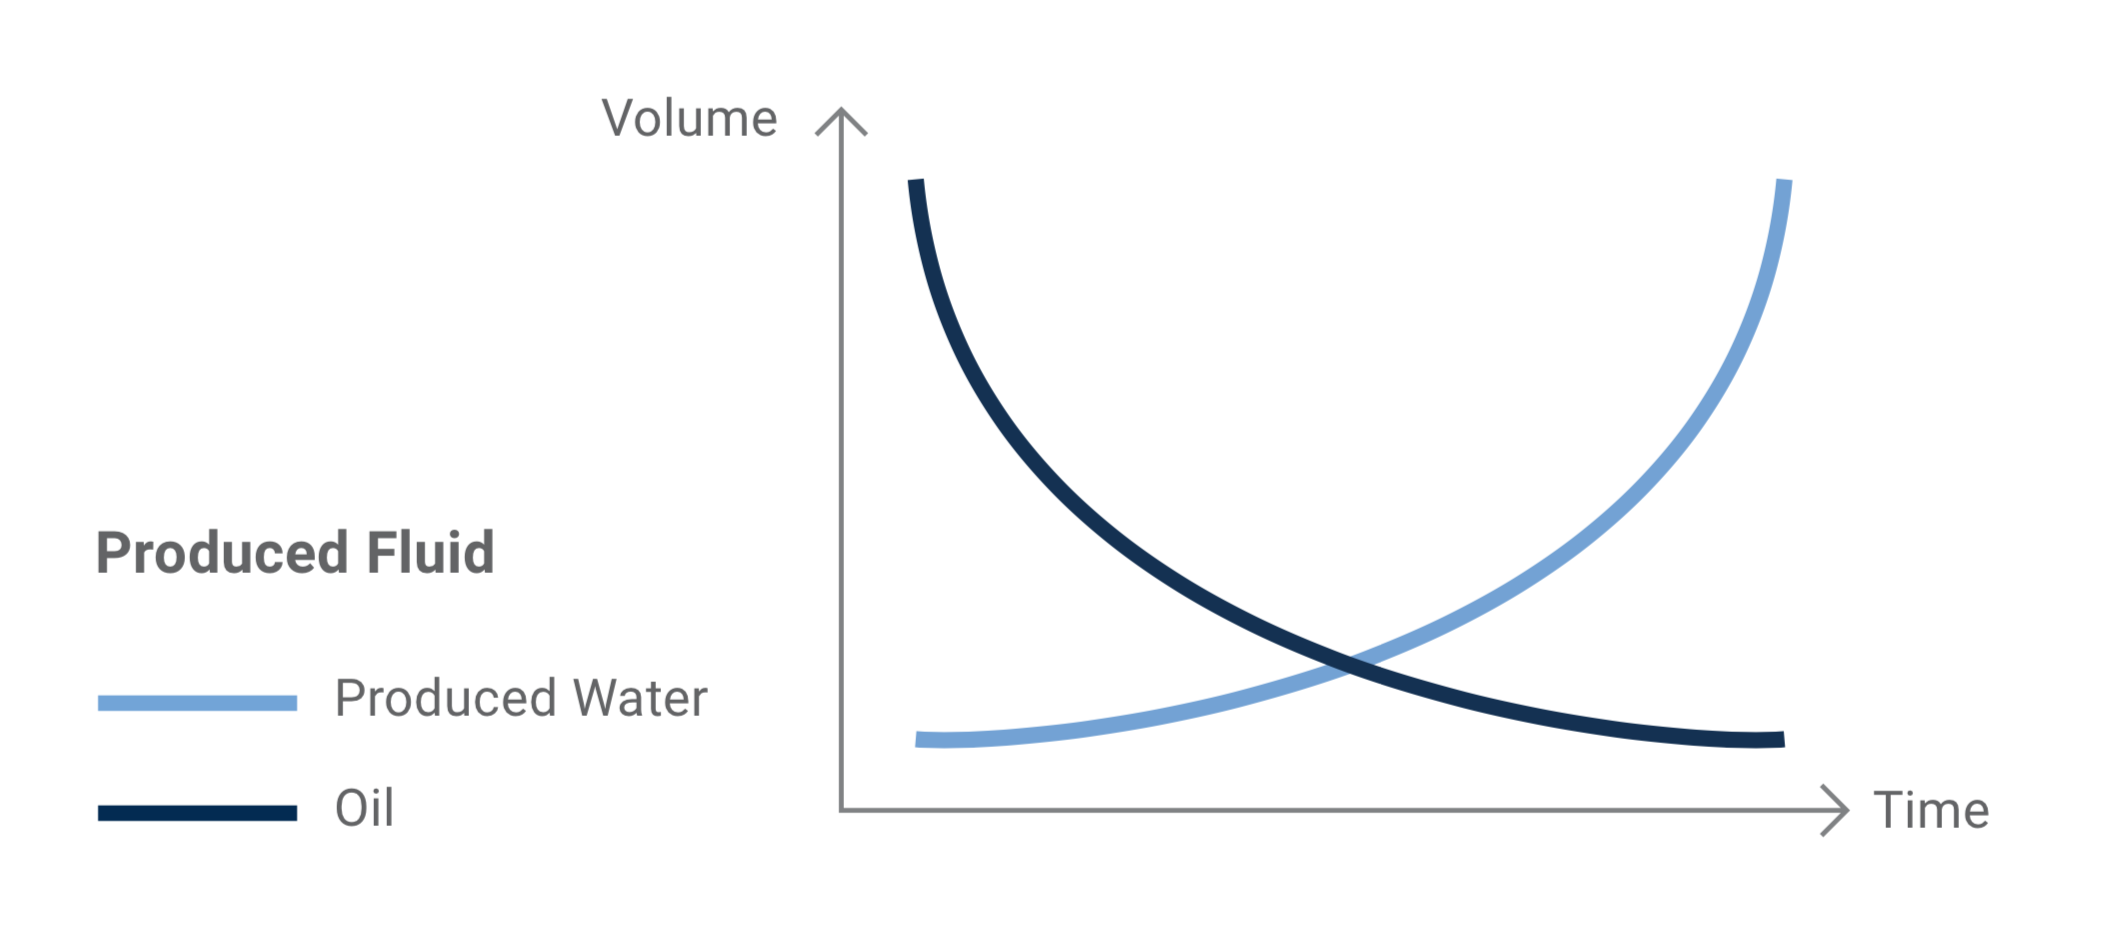 - Produced water is considered the largest volume by-product within upstream Oil & Gas operations.The associated costs of managing it play a significant role in the profitability of producing wells, especially as they age.